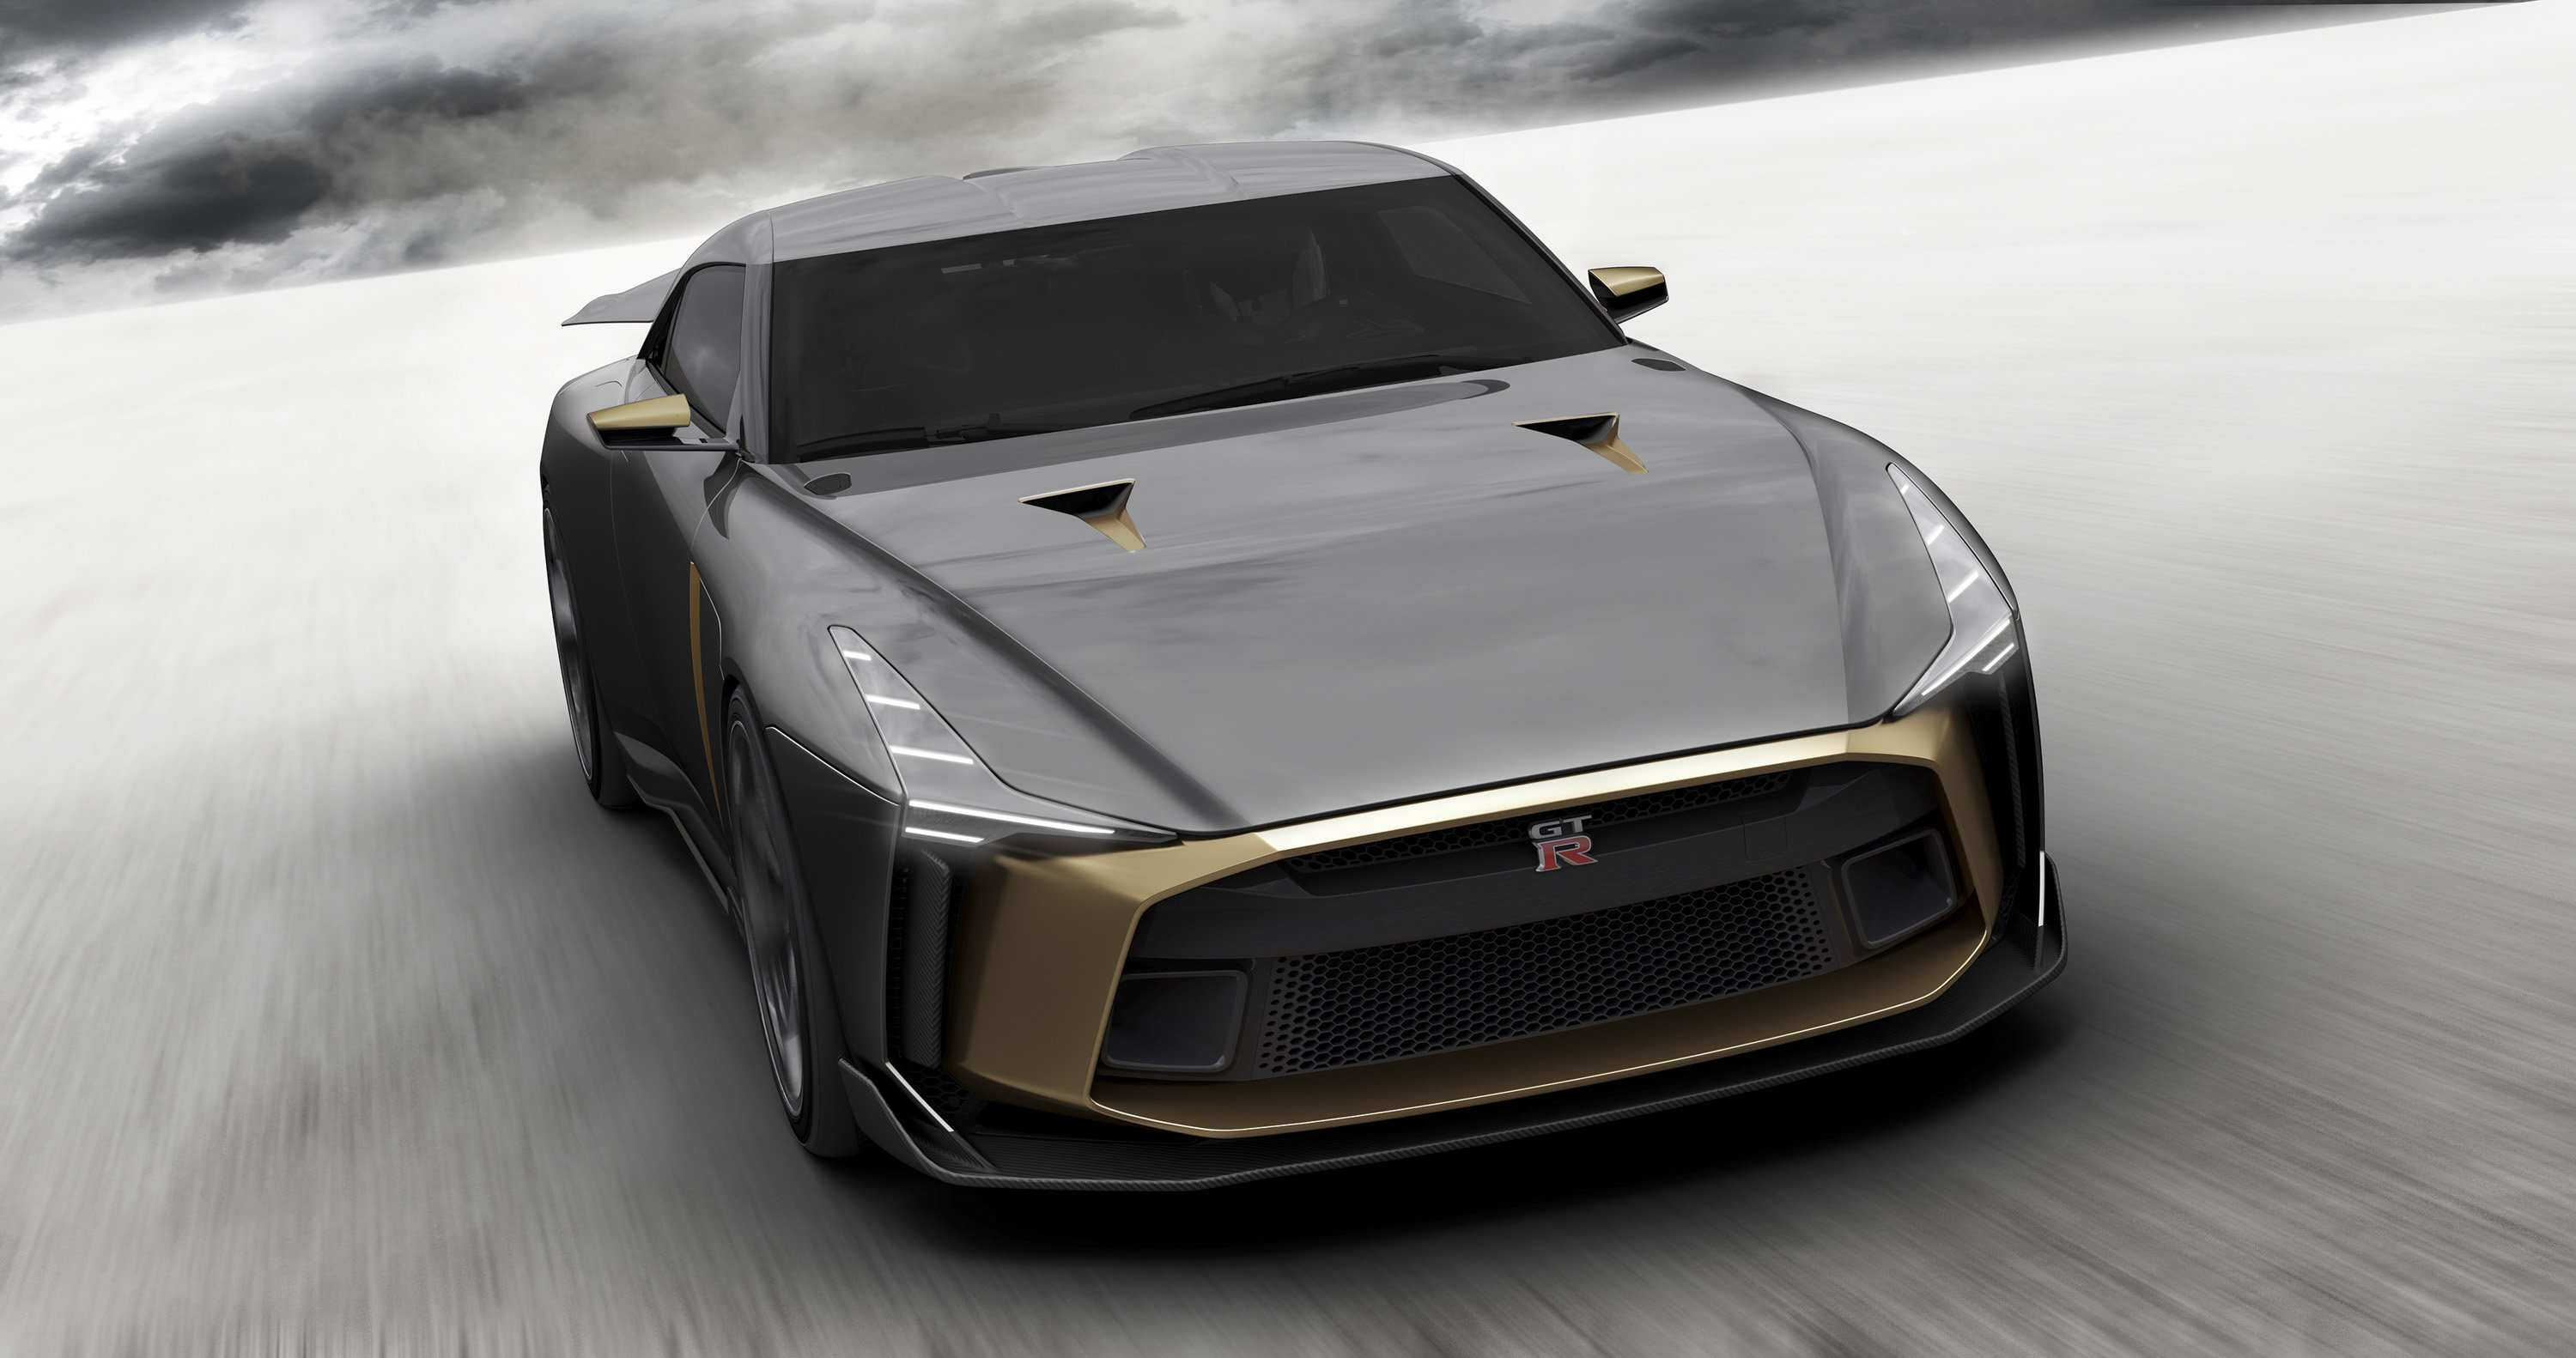 52 All New 2020 Nissan Gtr Price and Review with 2020 Nissan Gtr